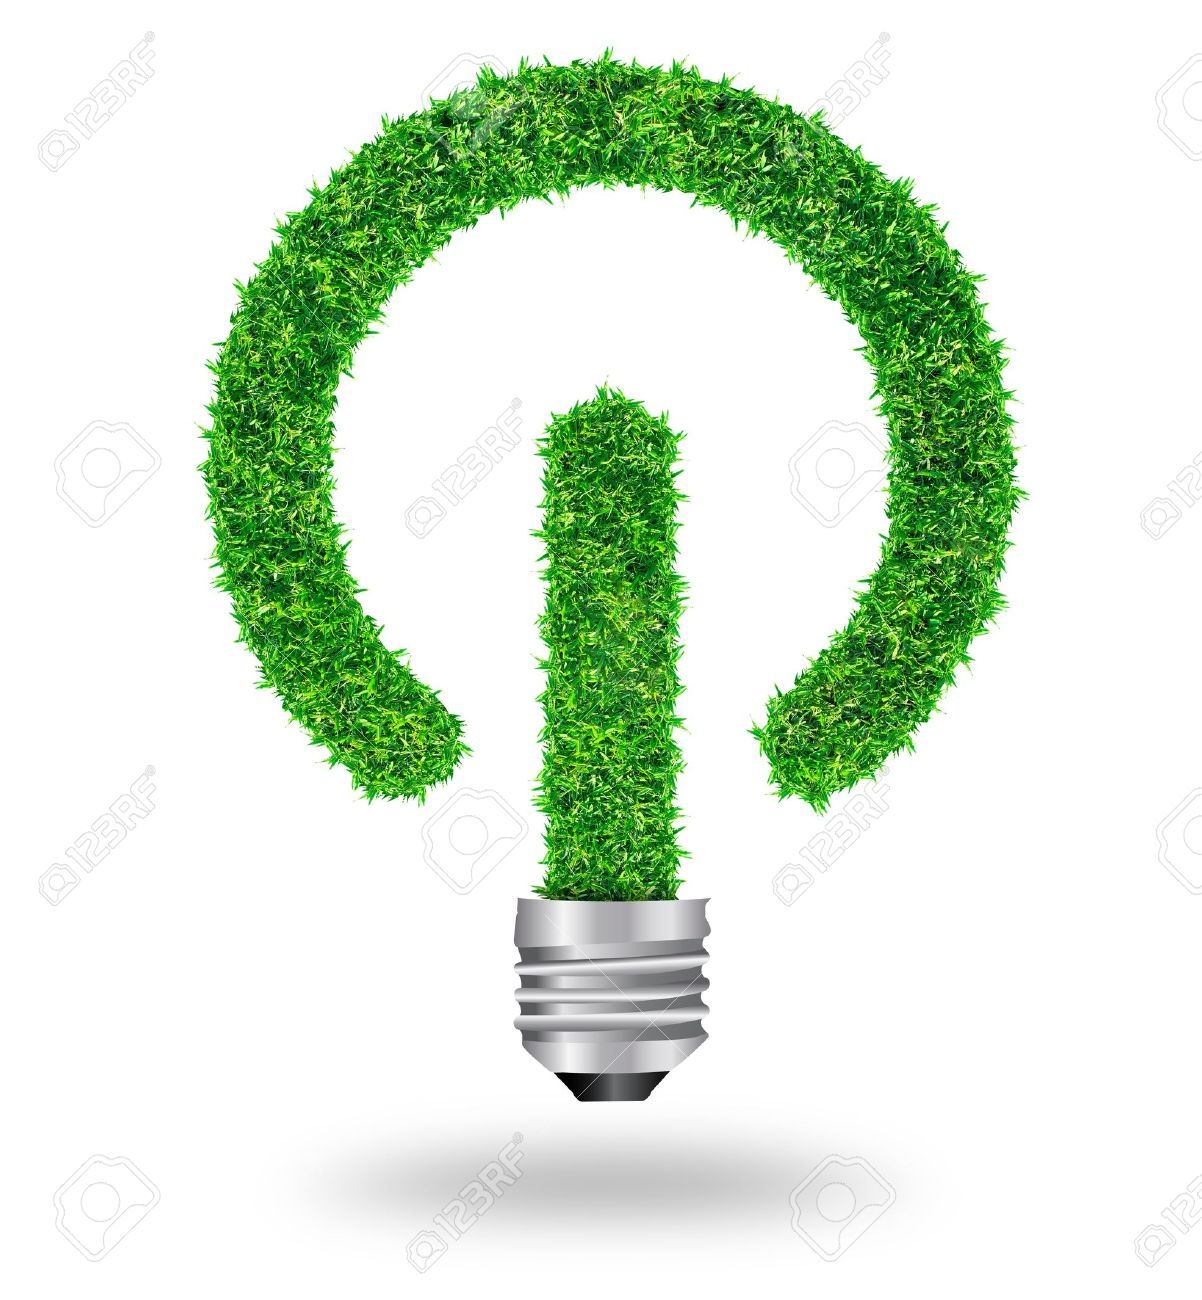 green grass bulb as symbol of sustainable energy and nature protection, isolated on white background With Save Paths for design work Stock Photo - 18153783